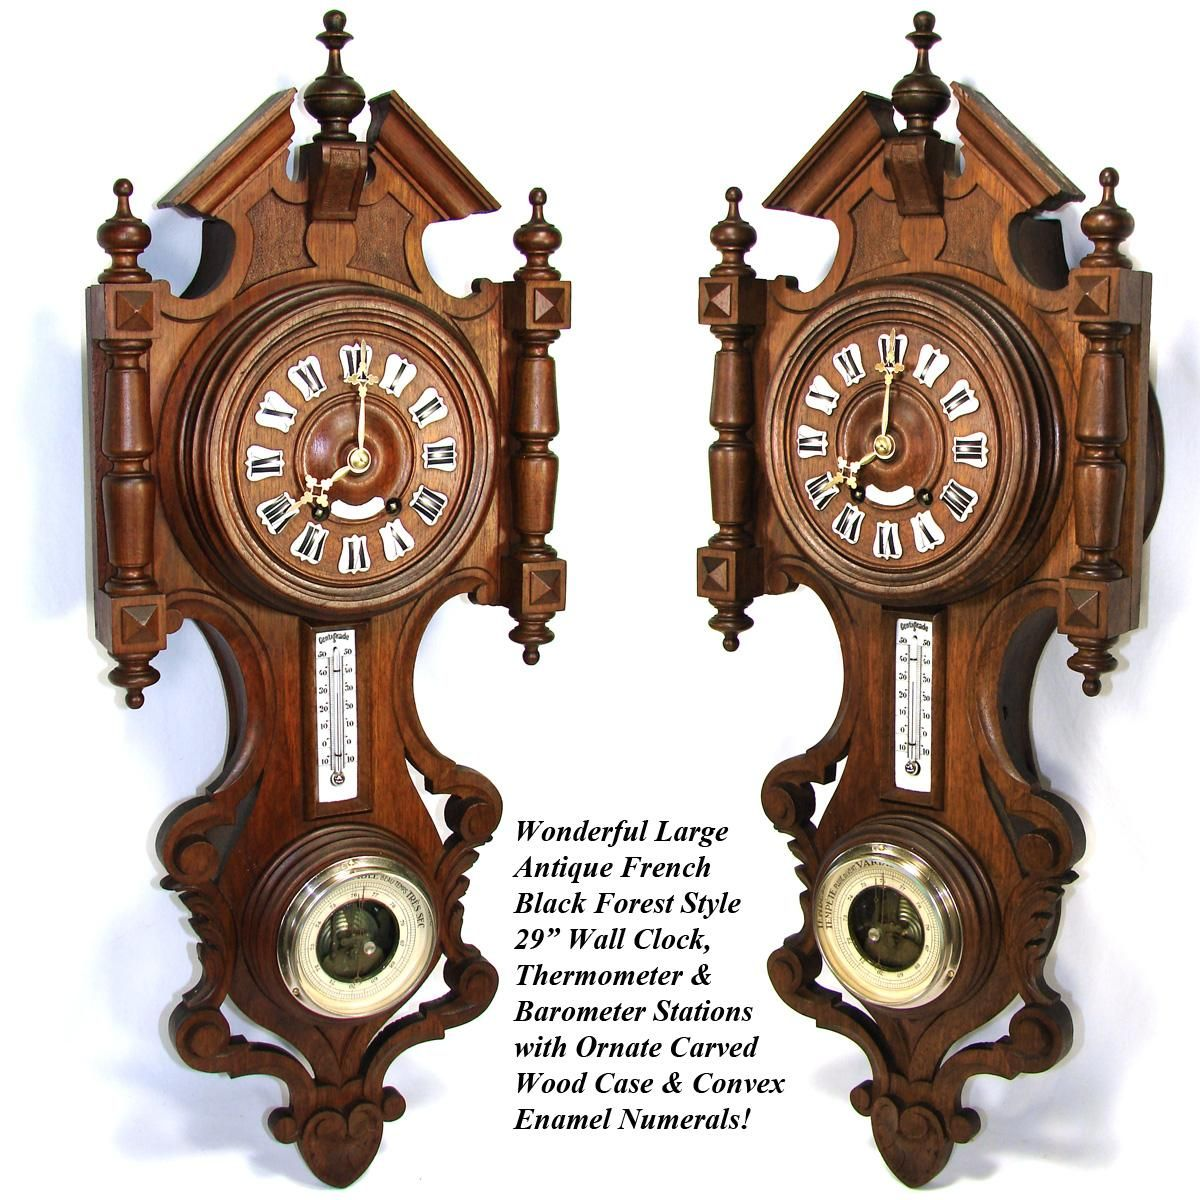 Lg antique french black forest style carved wood 29 wall clock lg antique french black forest style carved wood 29 wall clock barometer thermometer amipublicfo Choice Image